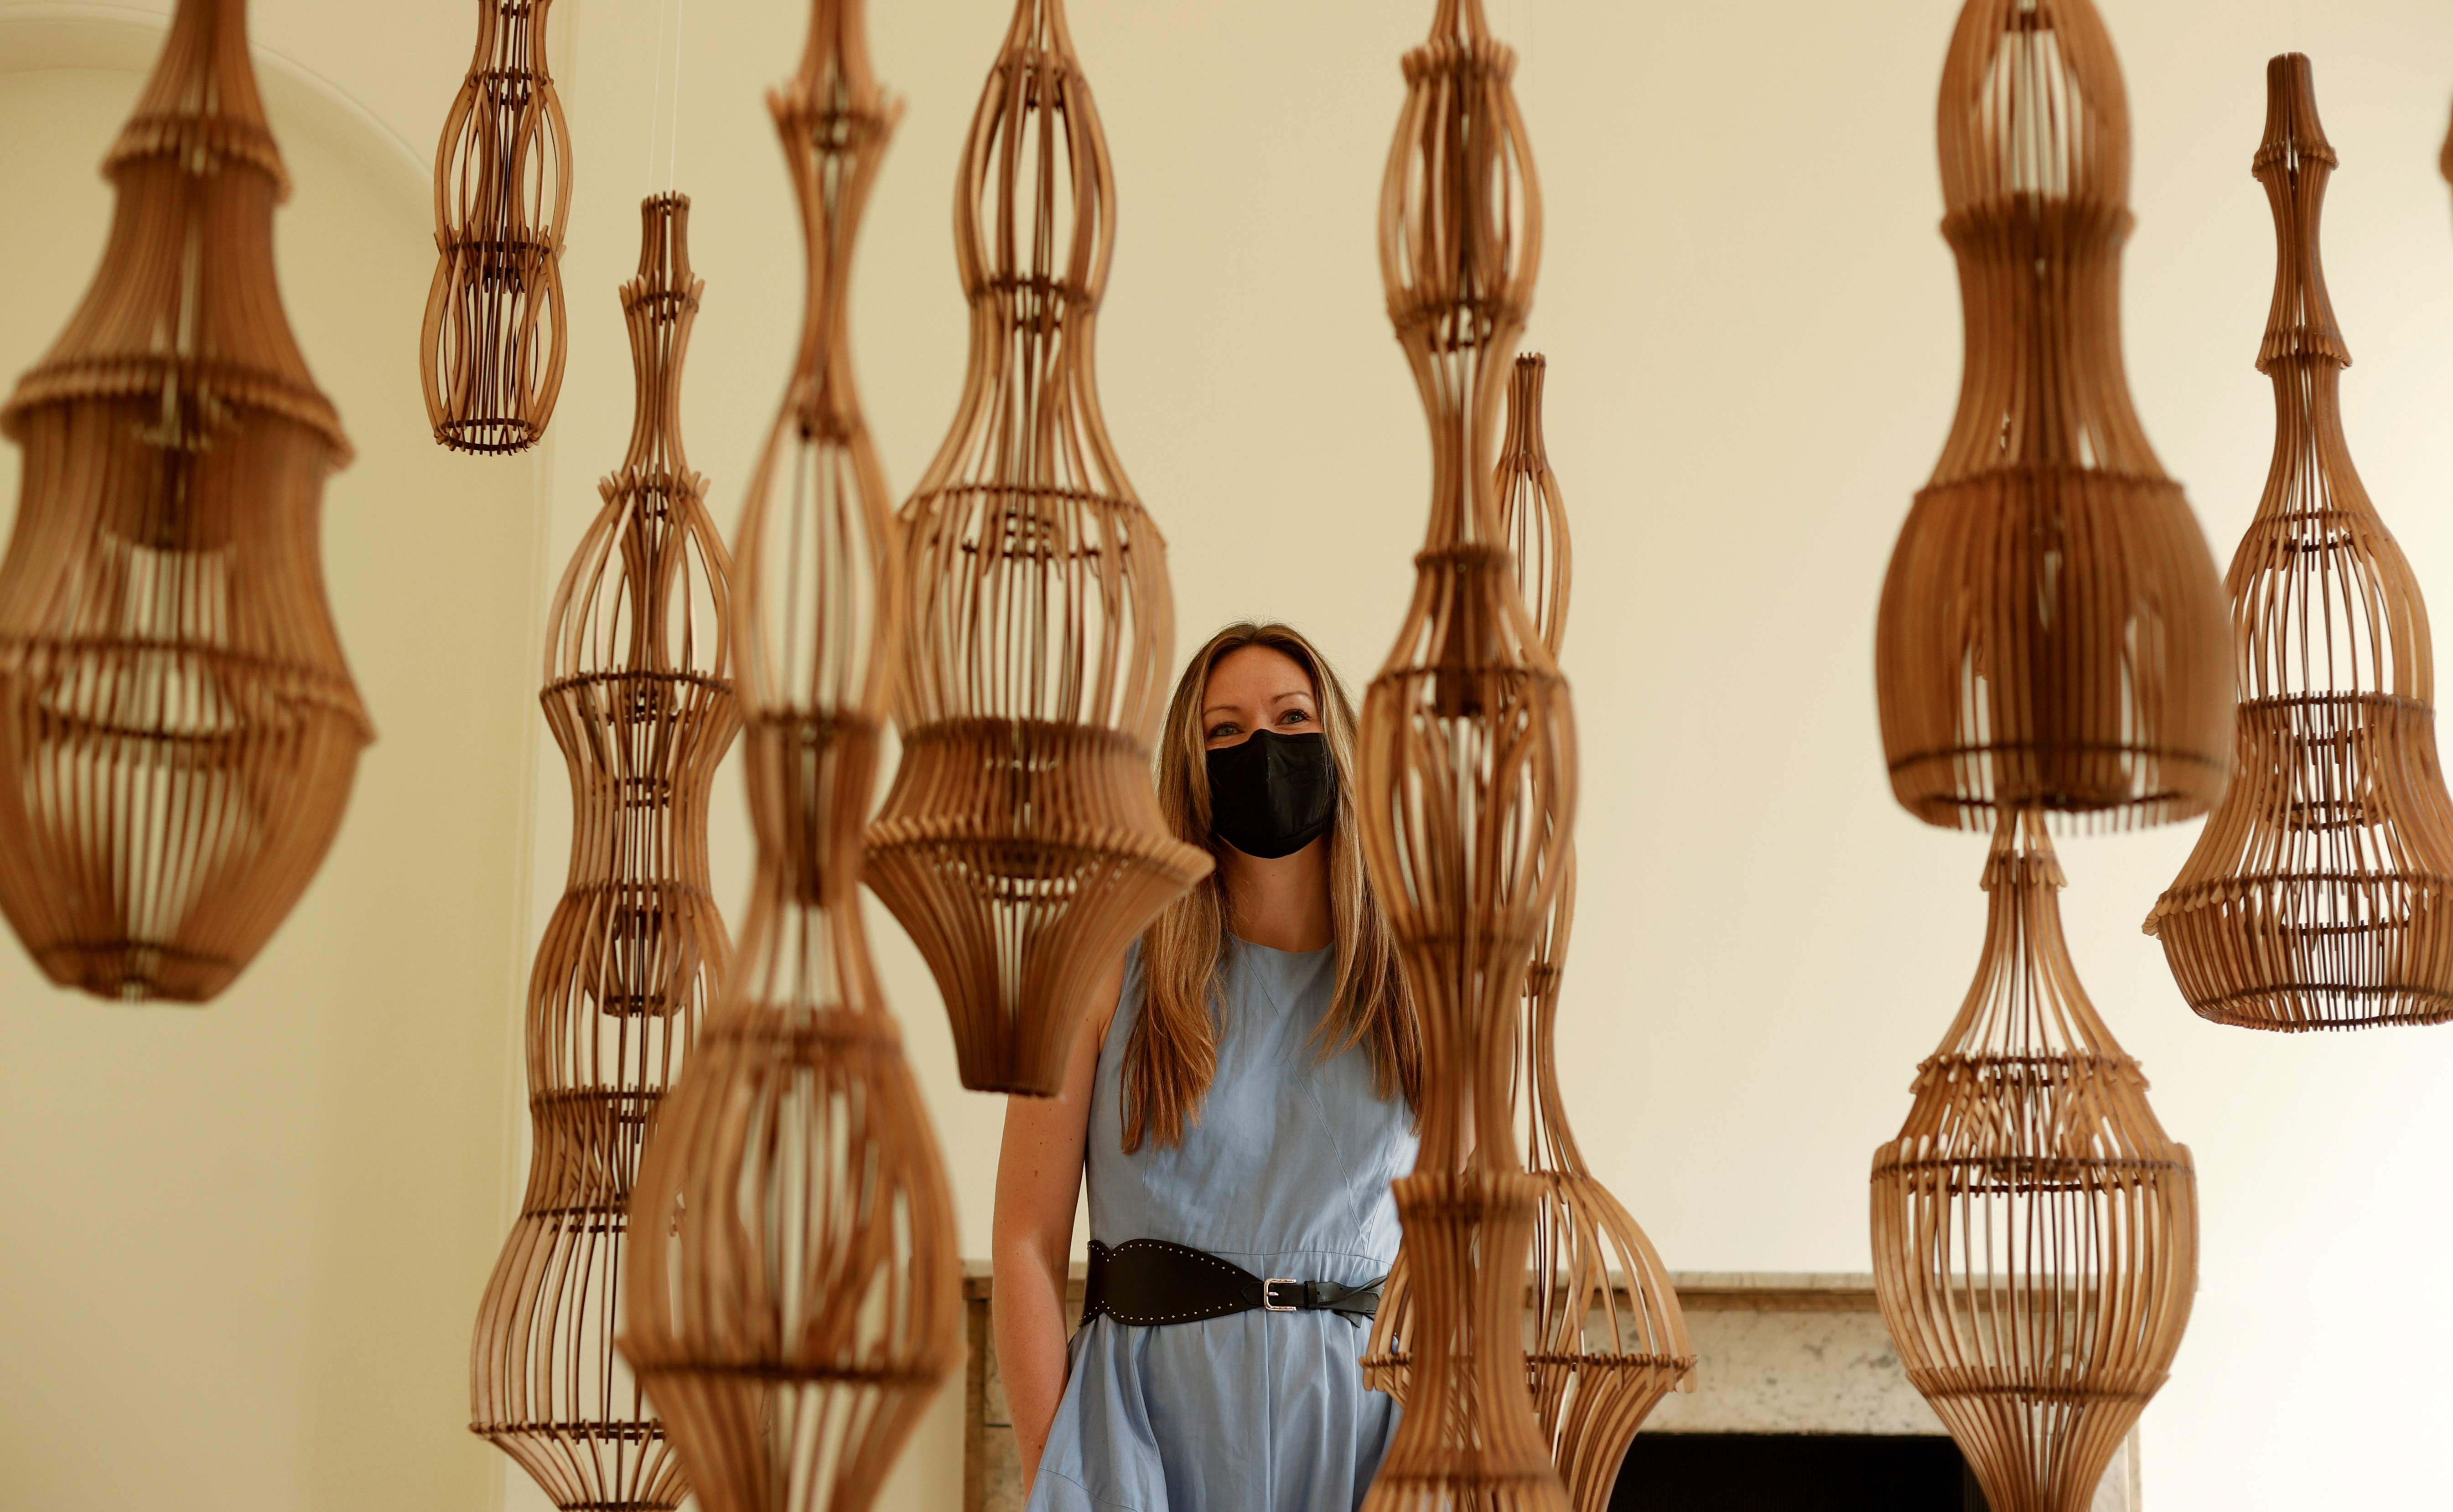 Artist Naomi McIntosh poses for a photograph with her creation 'Ruup & Form Quiet Garden' at the London Design Biennale at Somerset House in London, Britain, June 1, 2021. REUTERS/John Sibley